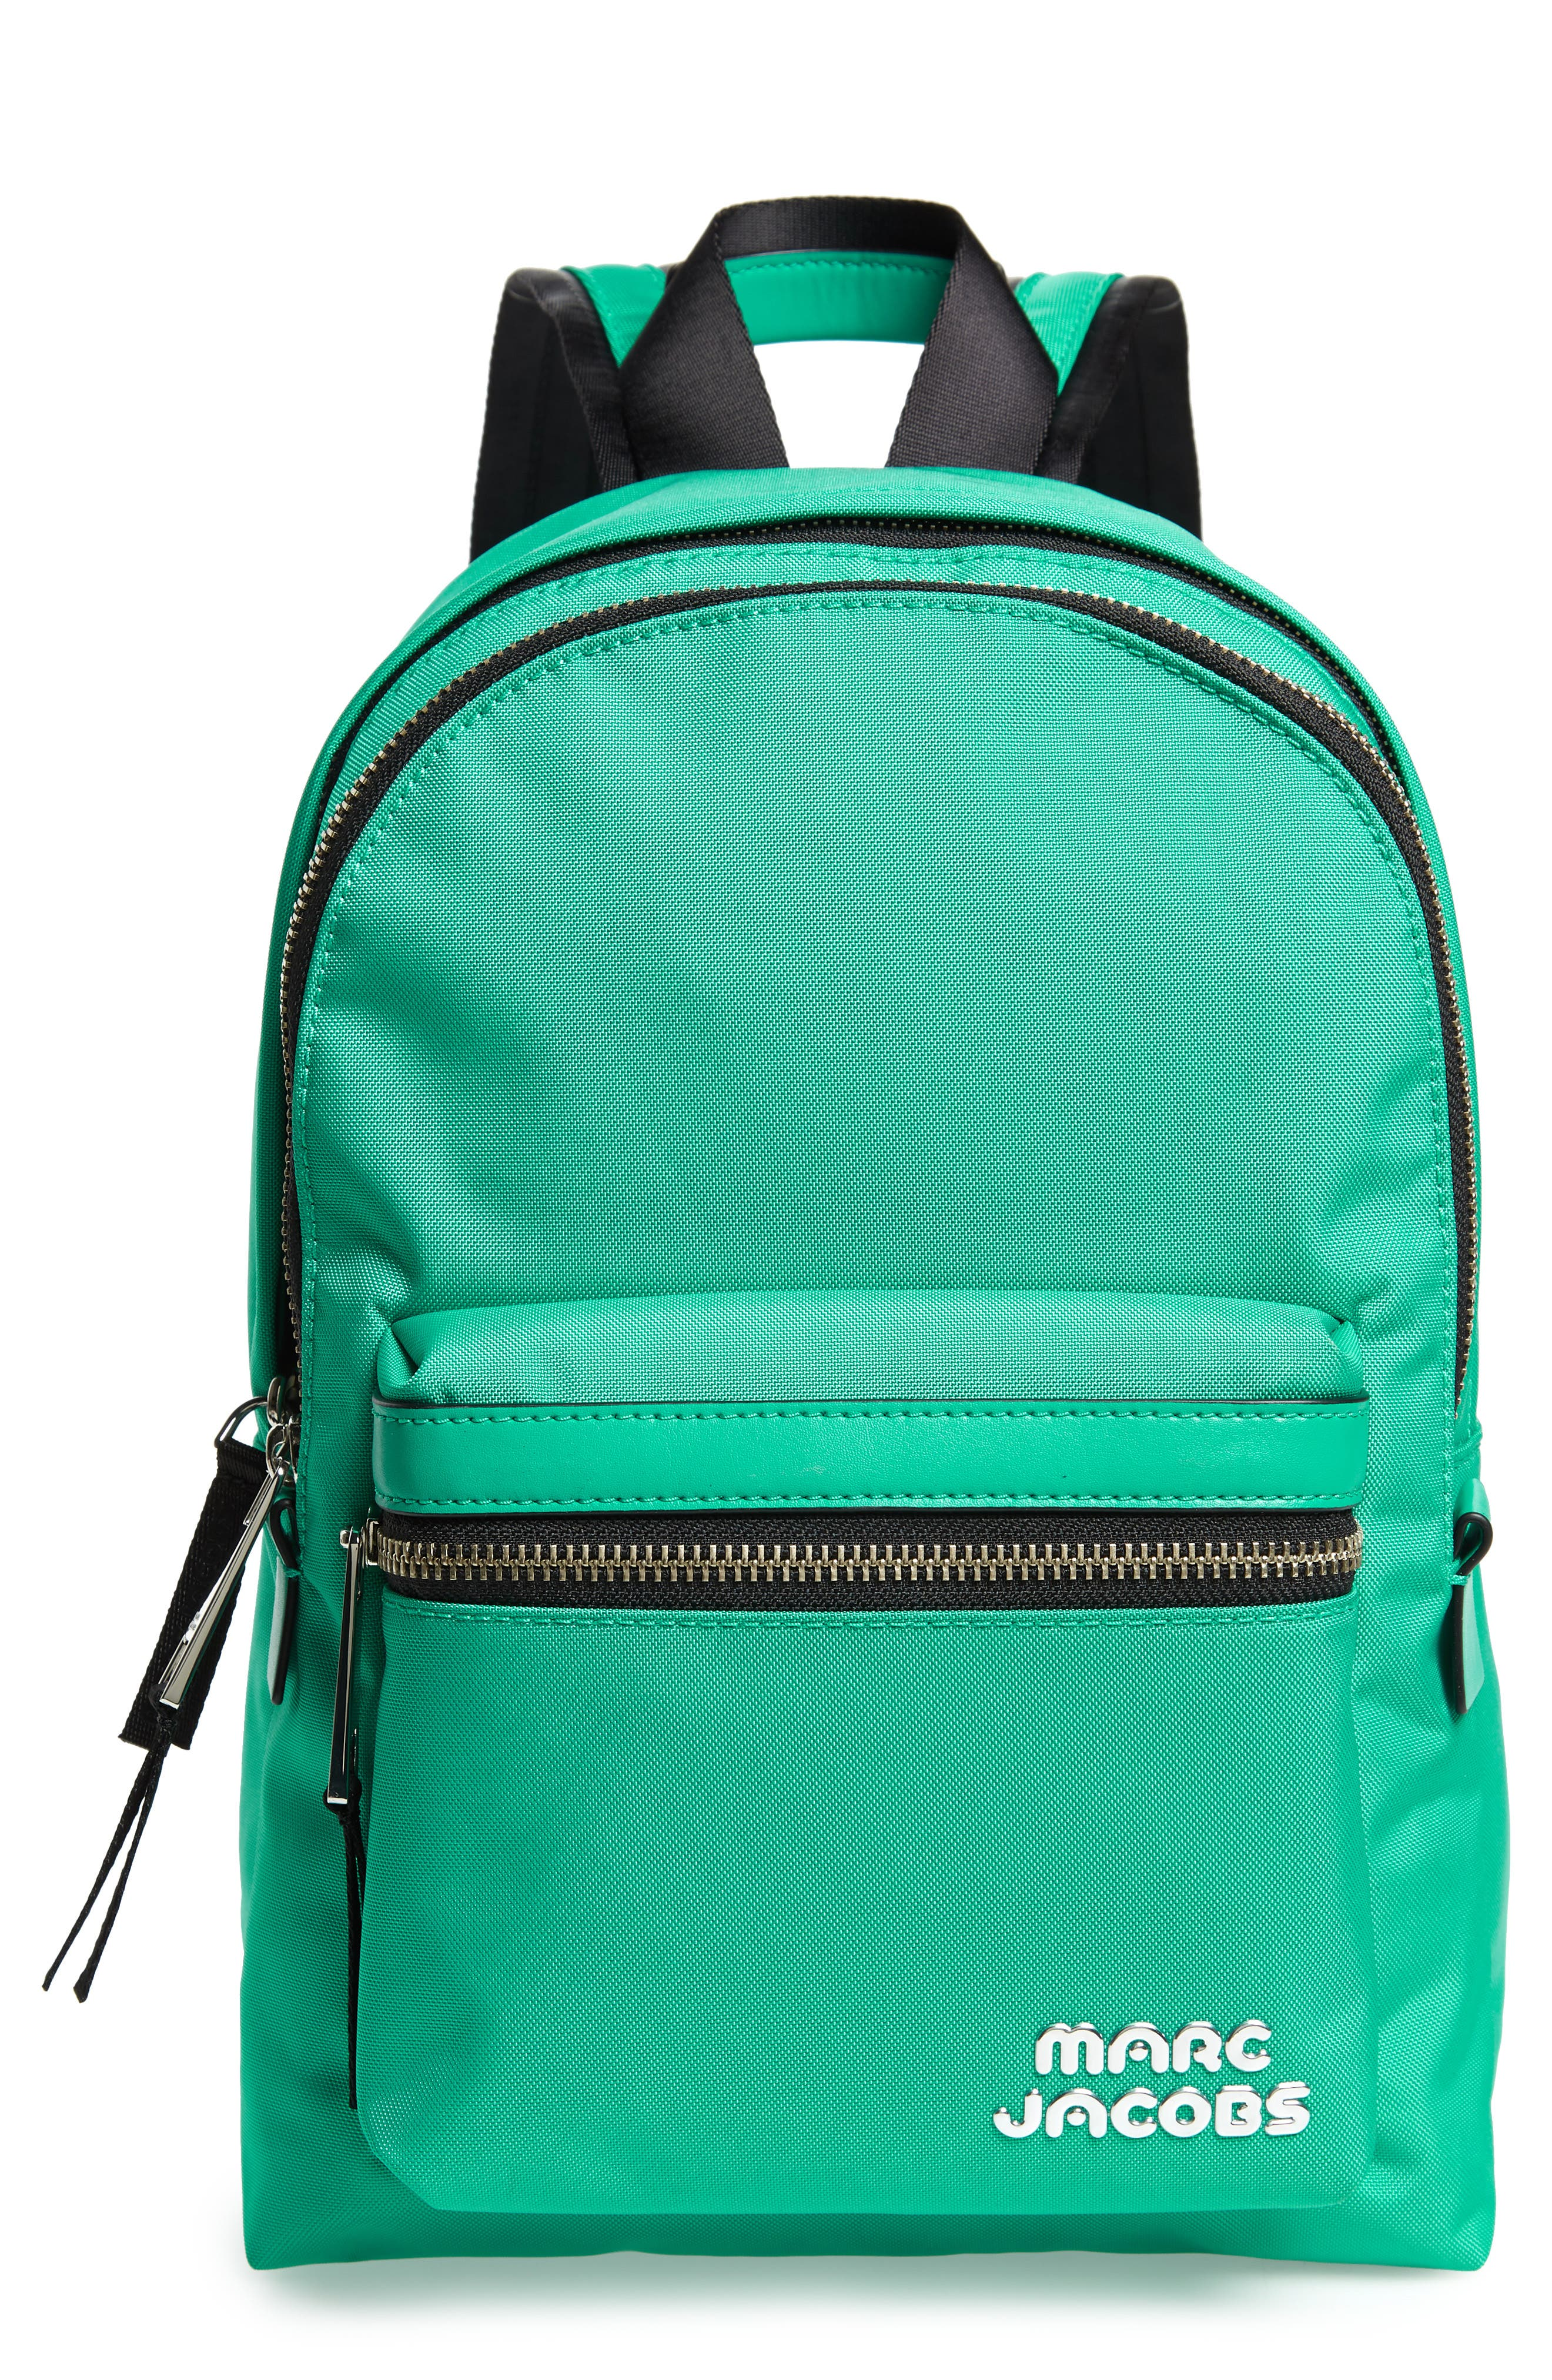 Medium Trek Nylon Backpack,                         Main,                         color, SAGE